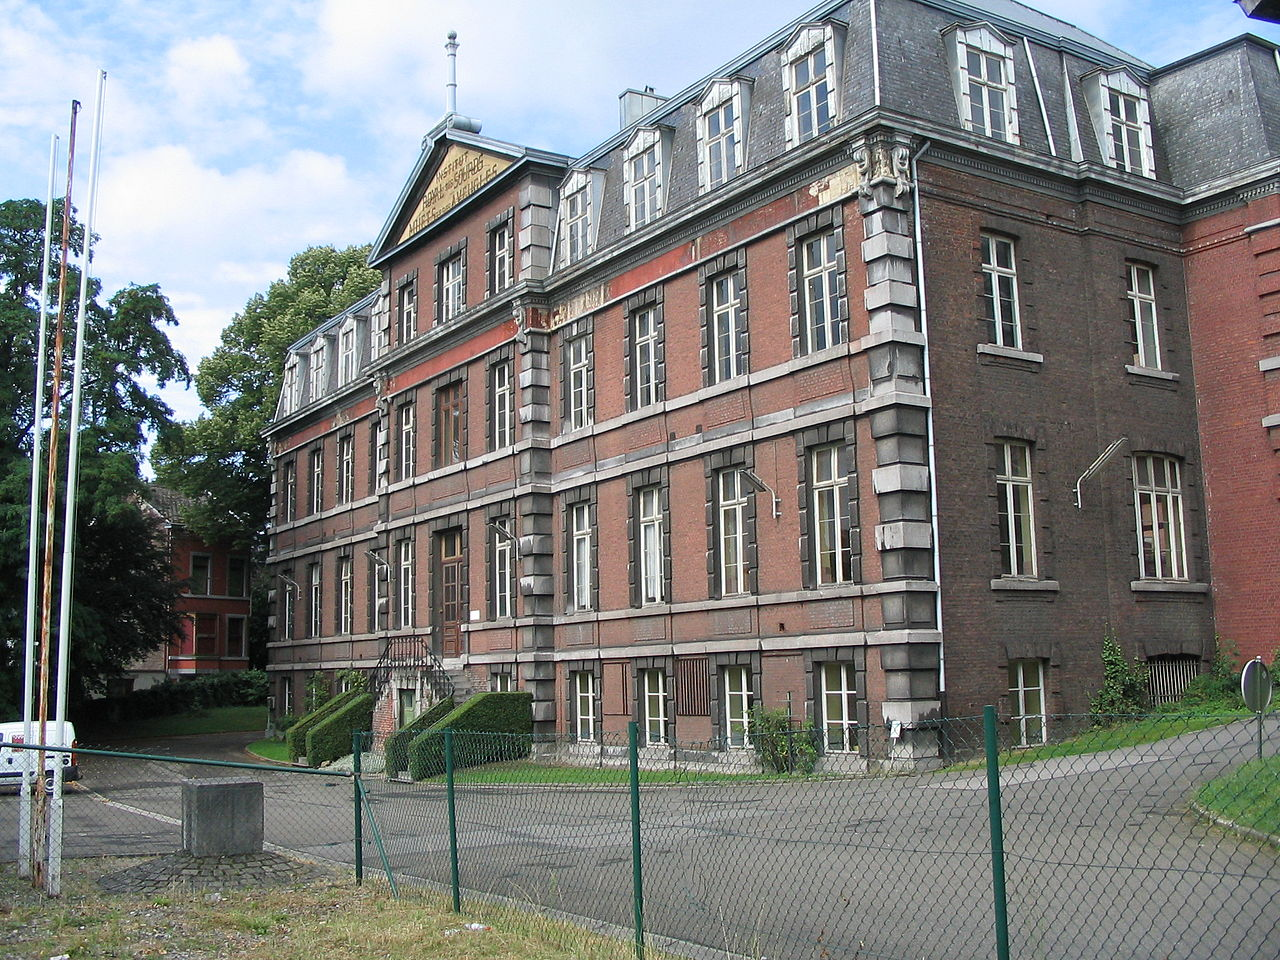 1819: First School for the Deaf in Belgium - Walloon